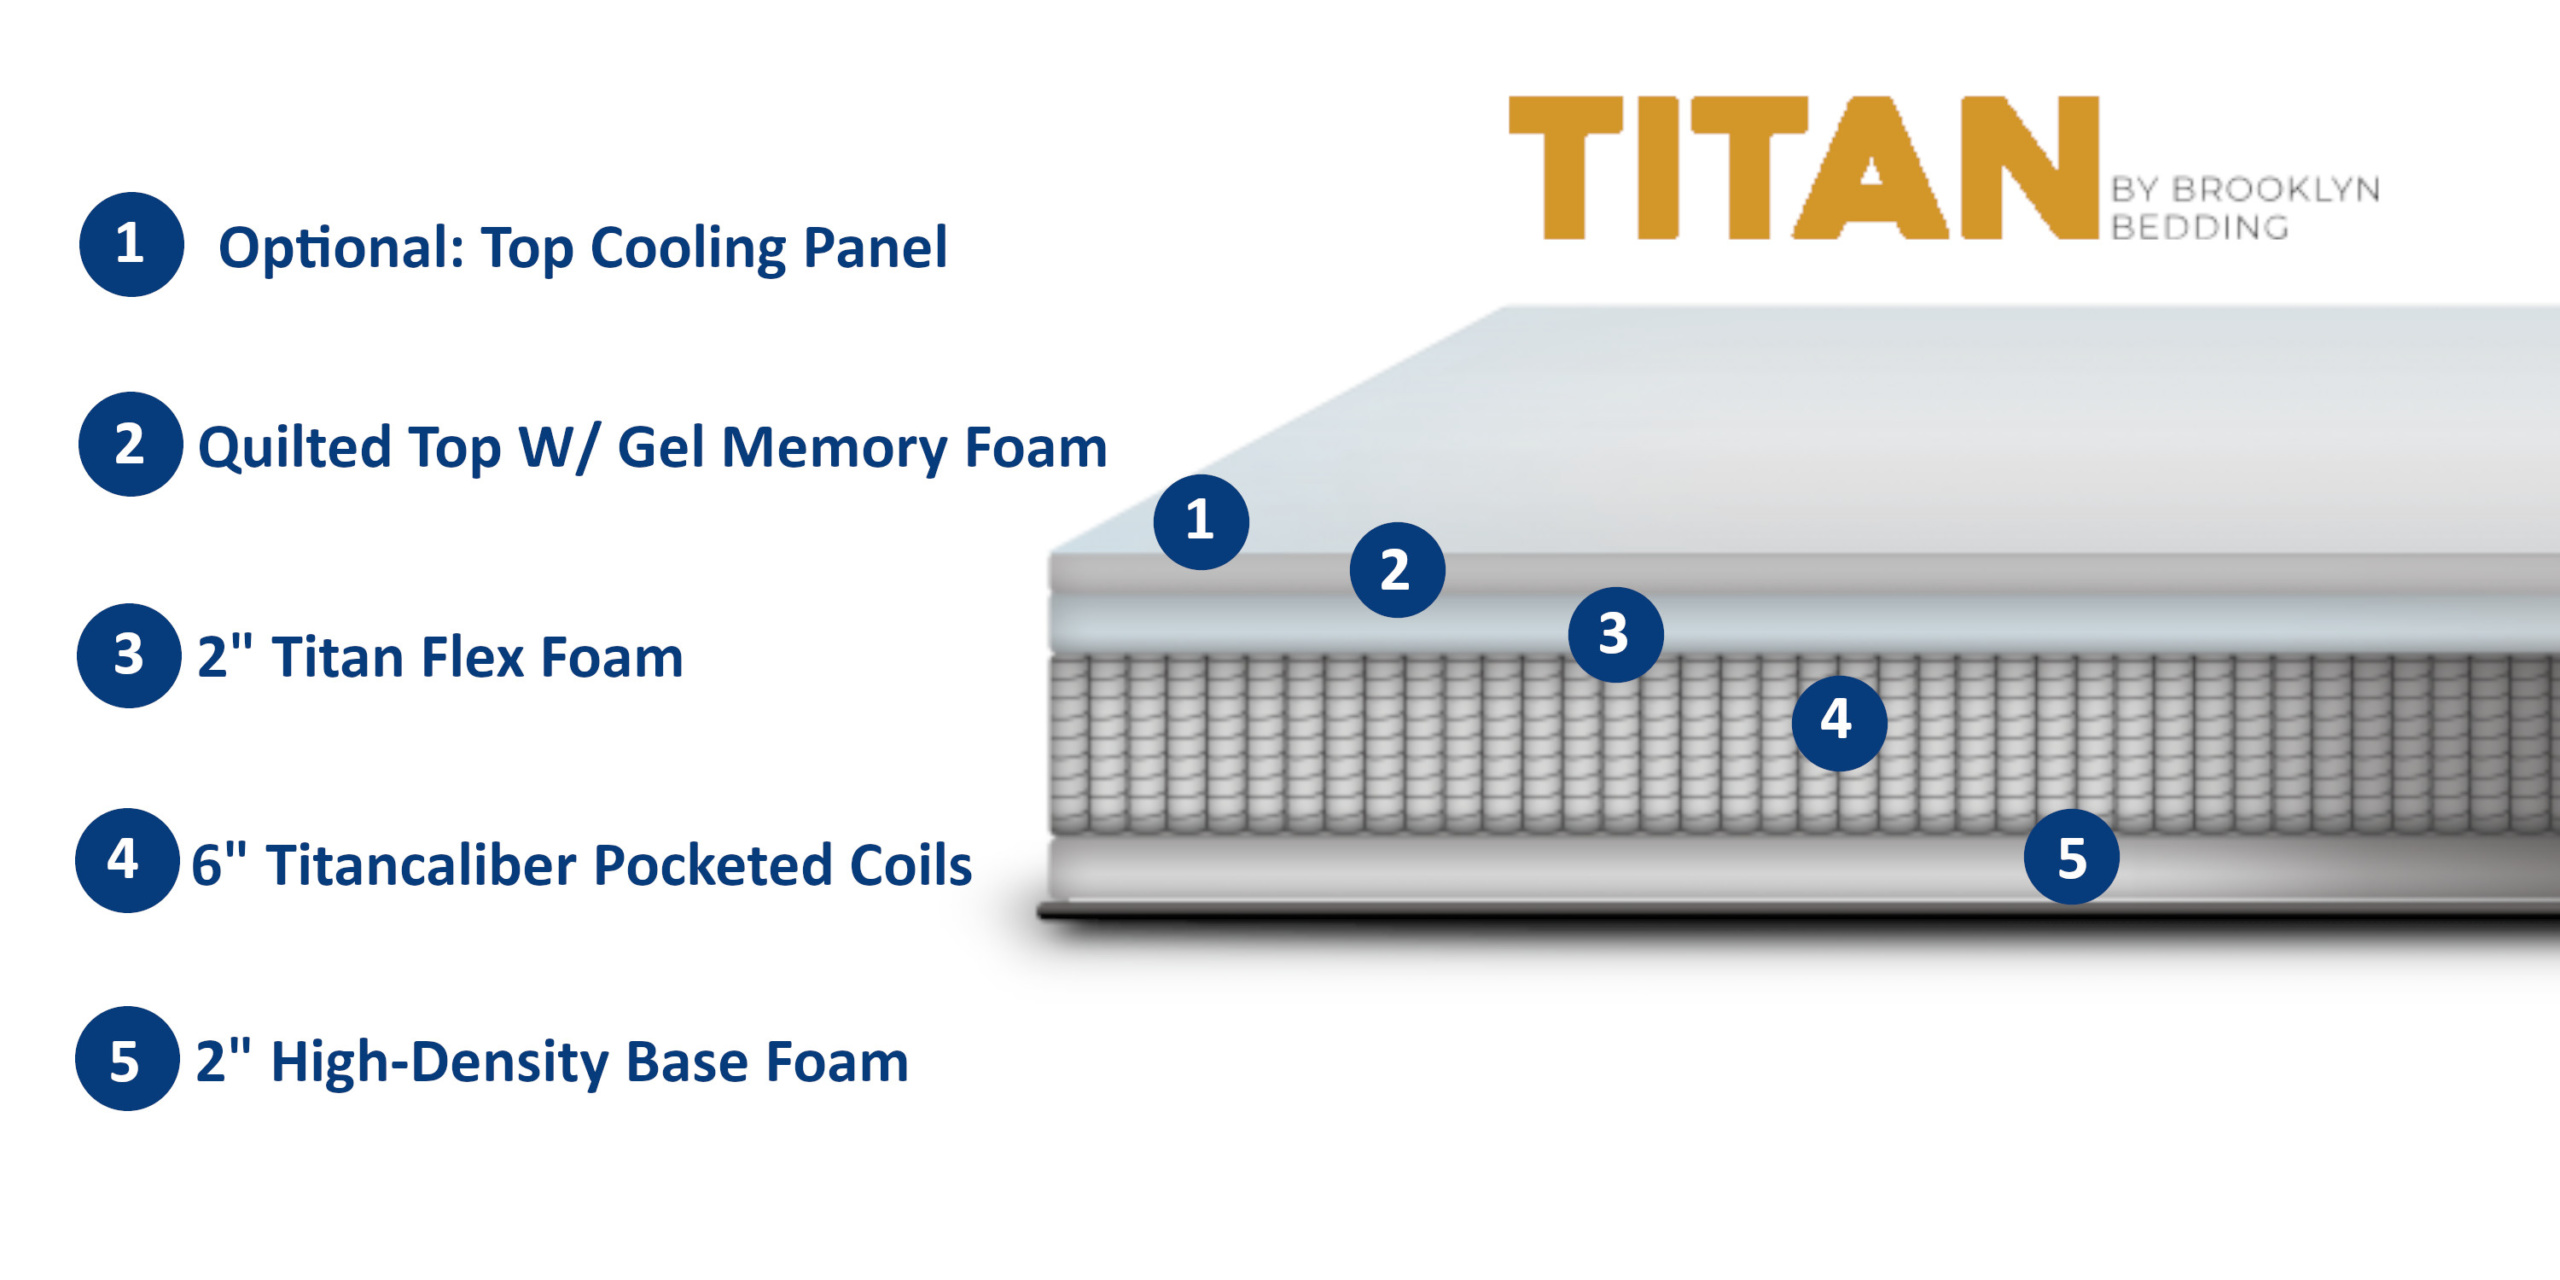 titan mattress layers and materials compared to the big fig mattress